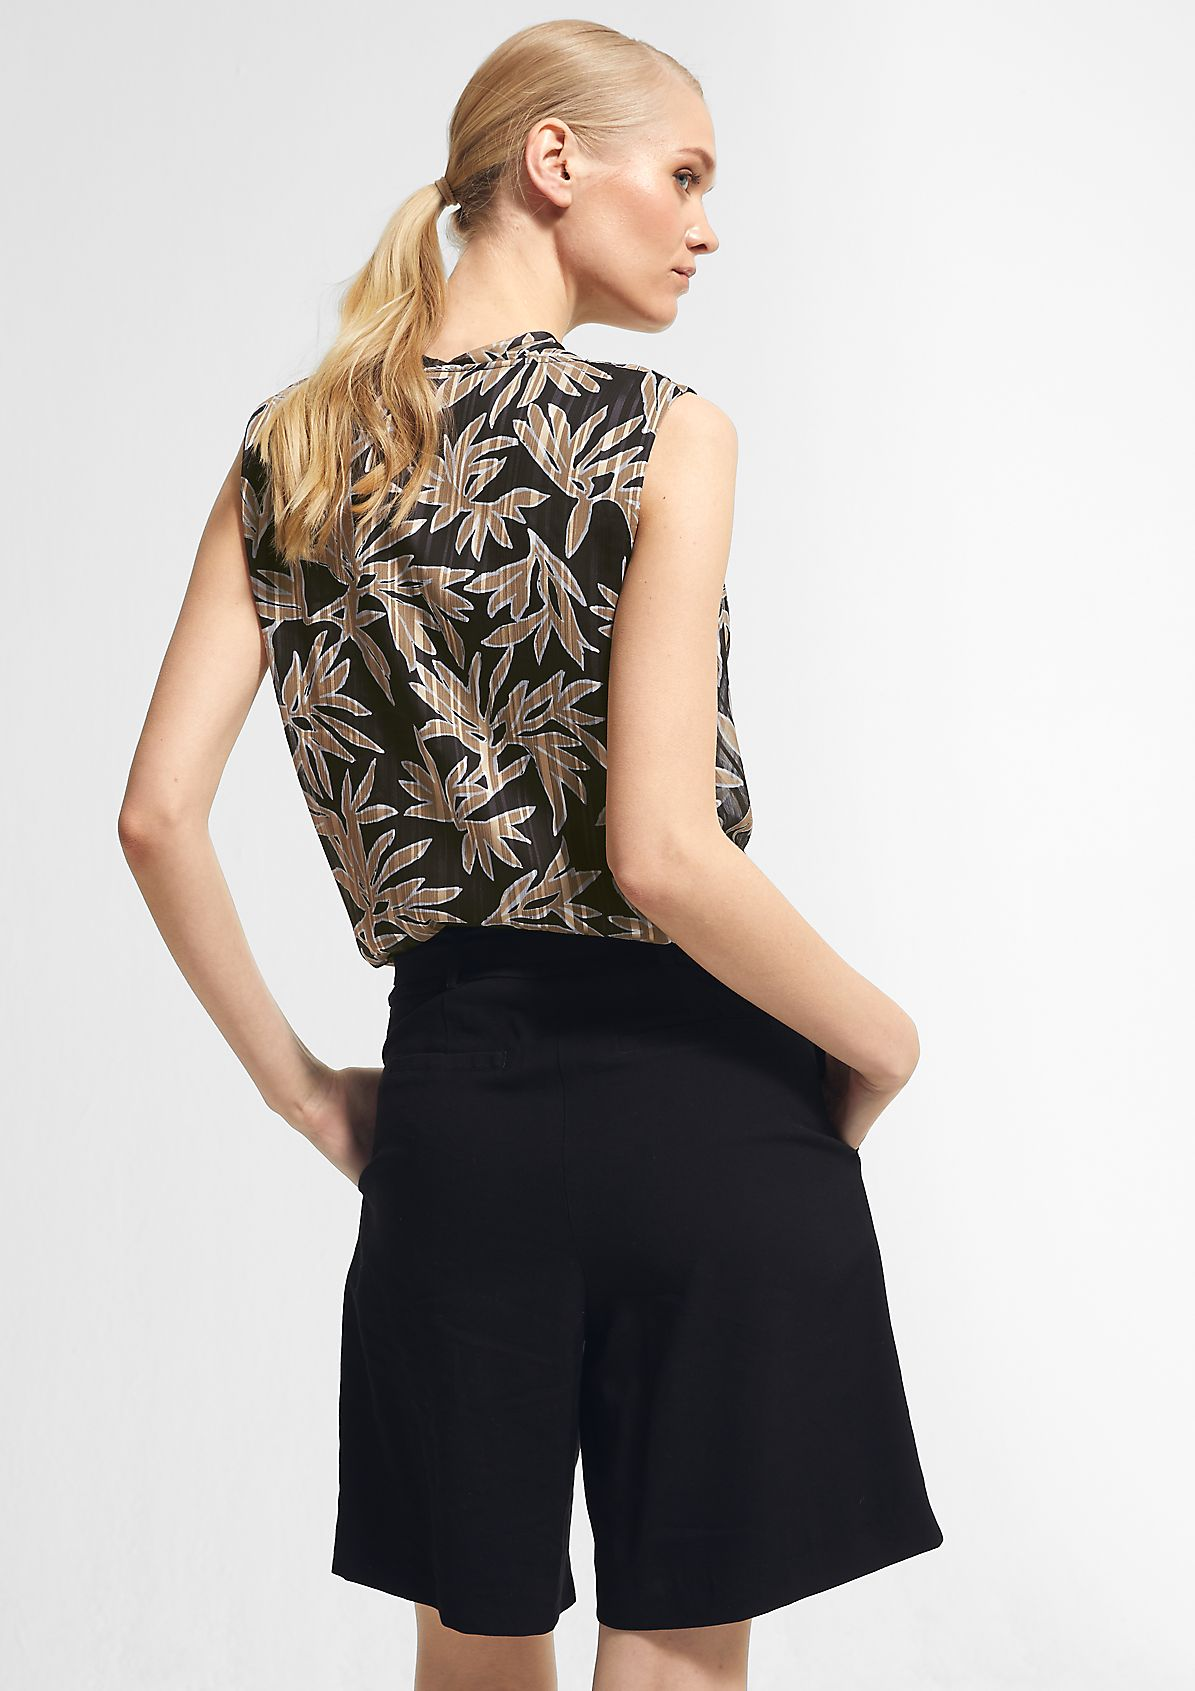 Blouse top with a lower layer made of jersey from comma